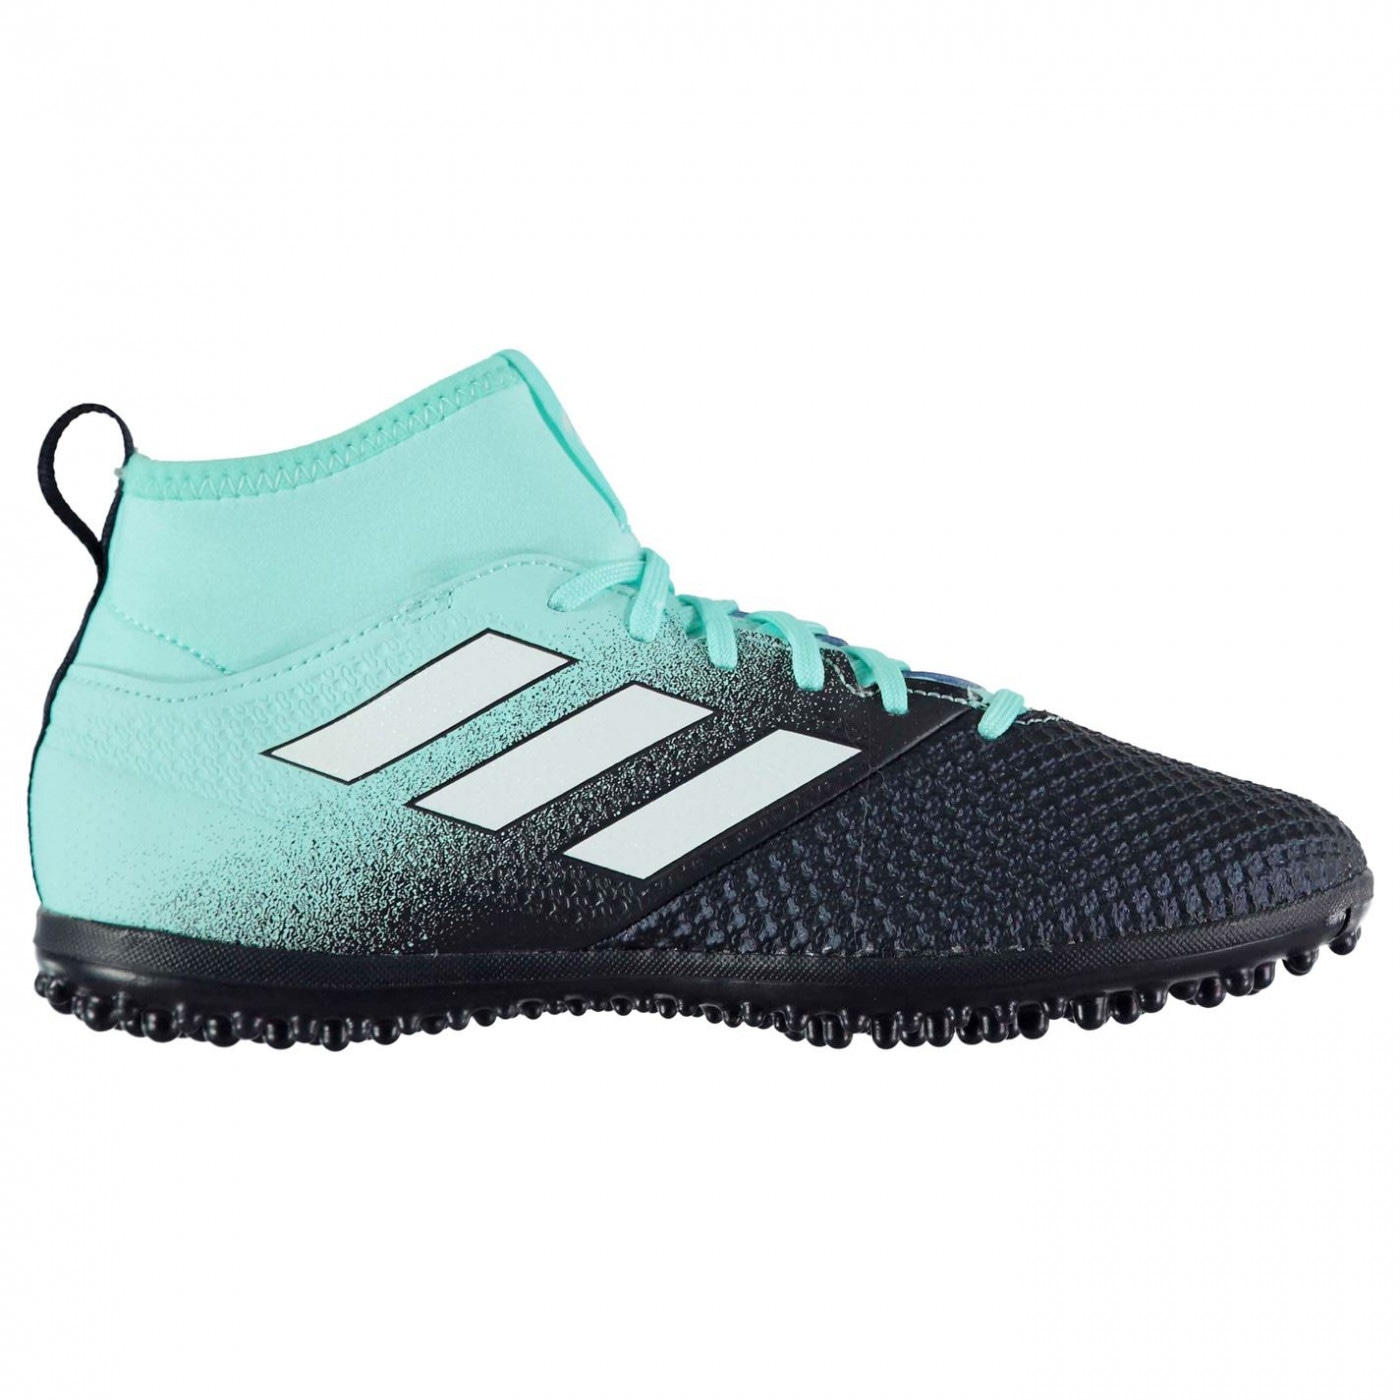 0a2f352f28d Adidas Ace 17.3 Primemesh Mens Astro Turf Trainers - FACTCOOL